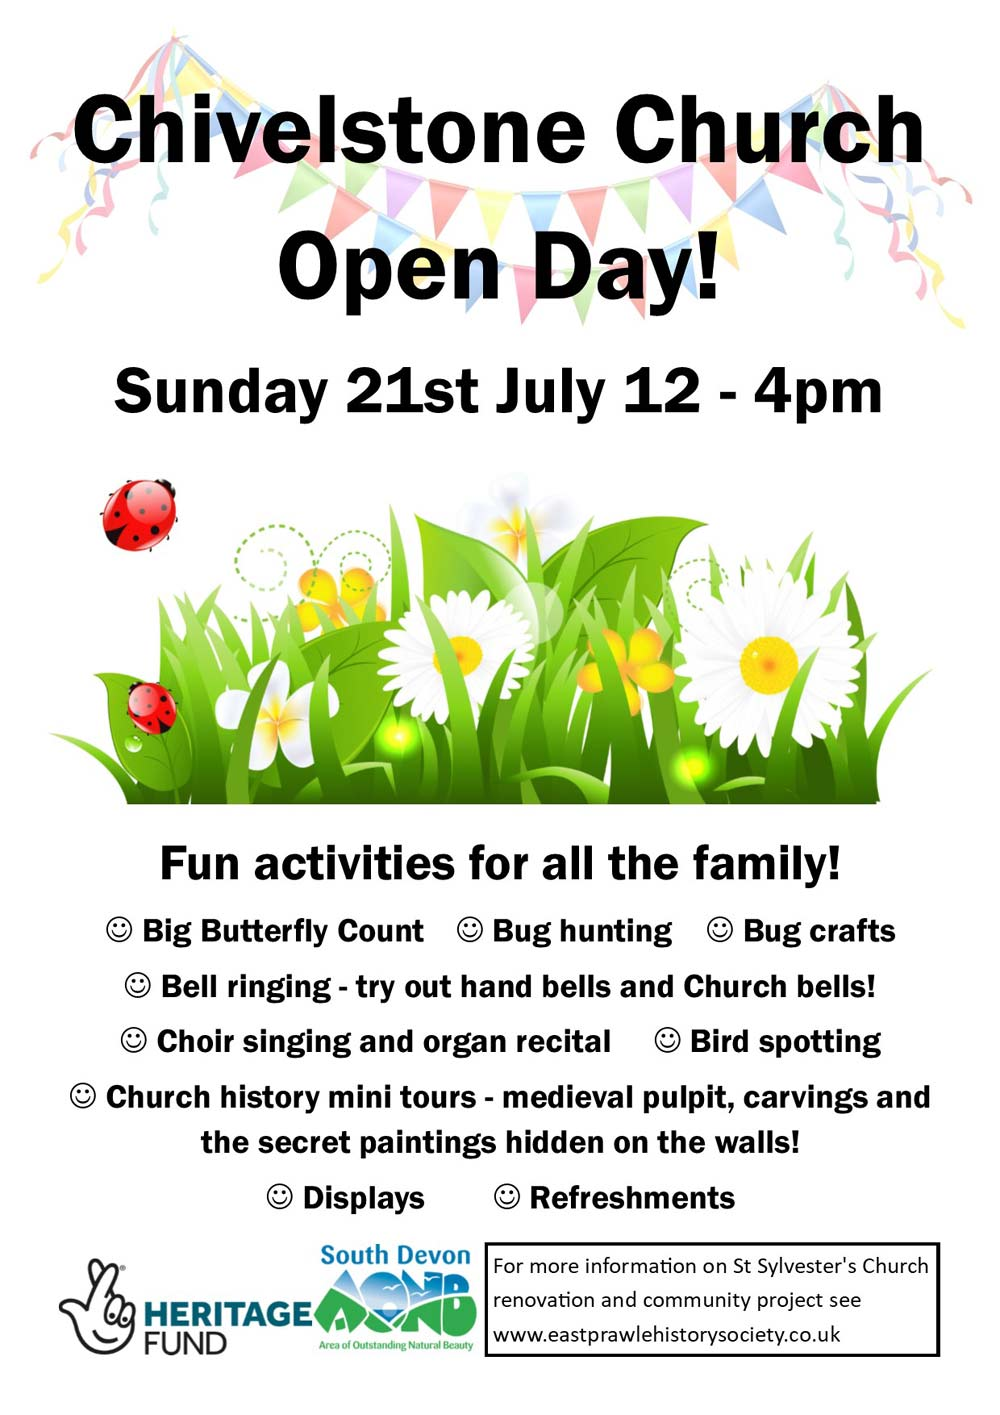 Open Day at Chivelstone Church